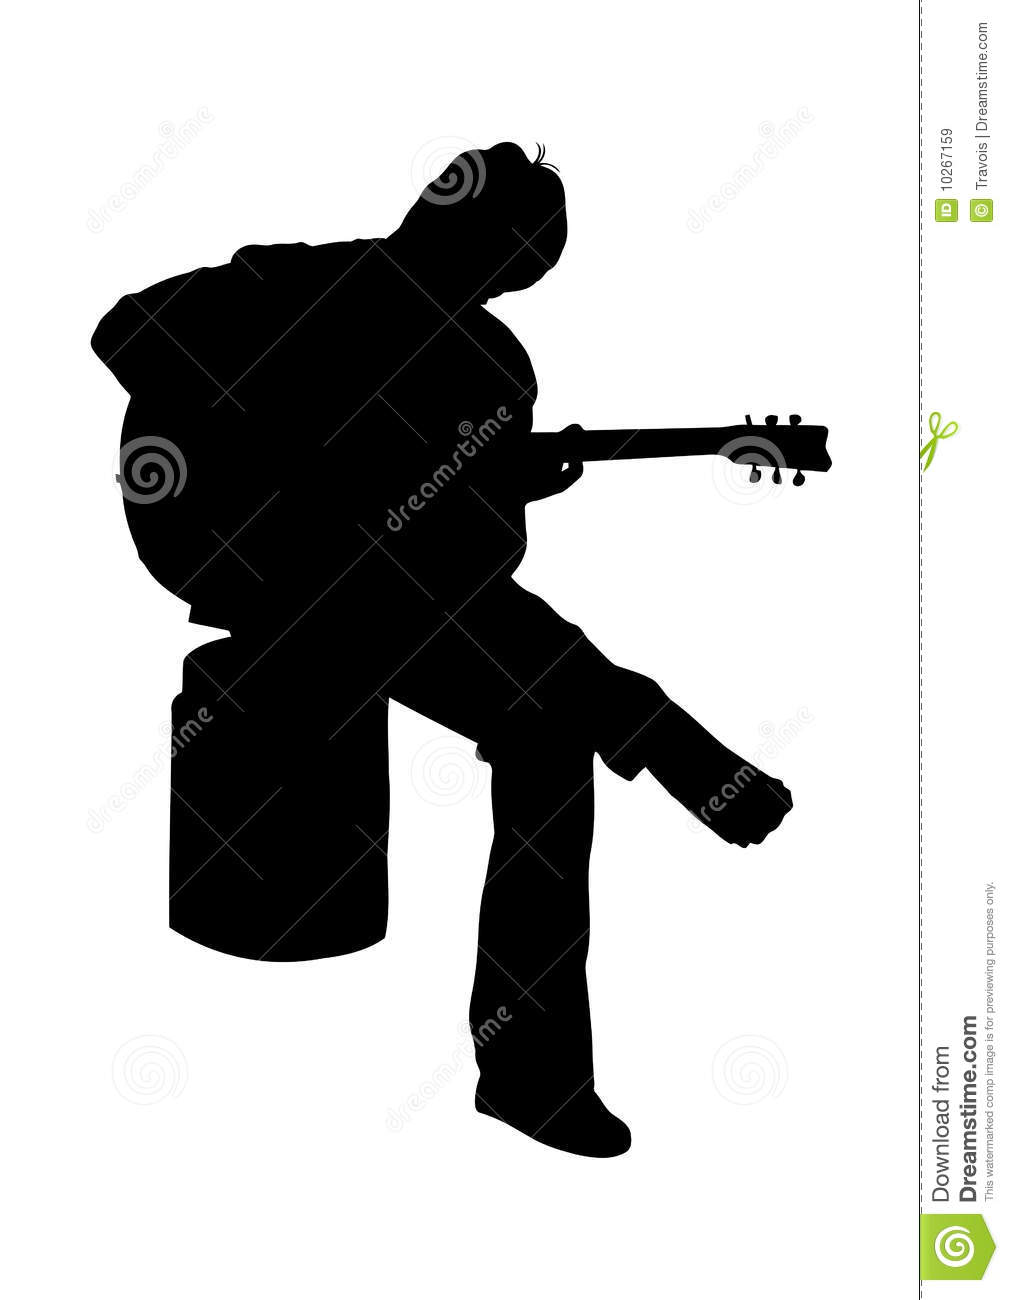 Guitarist Silhouette Royalty Free Stock Images - Image ...